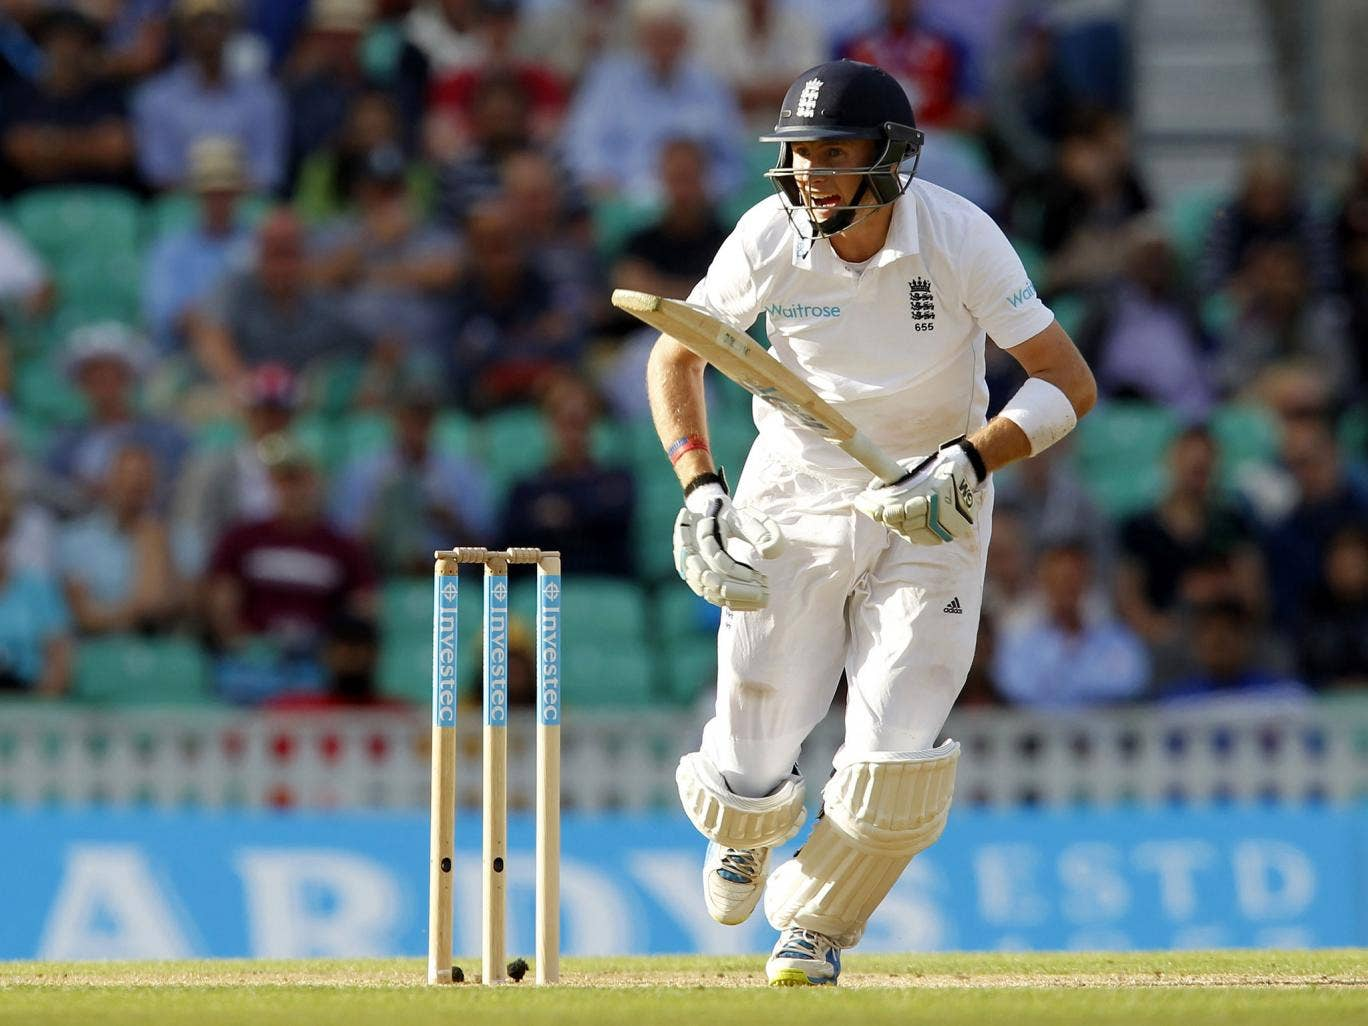 Joe Root steals a single on day two of the fifth Test